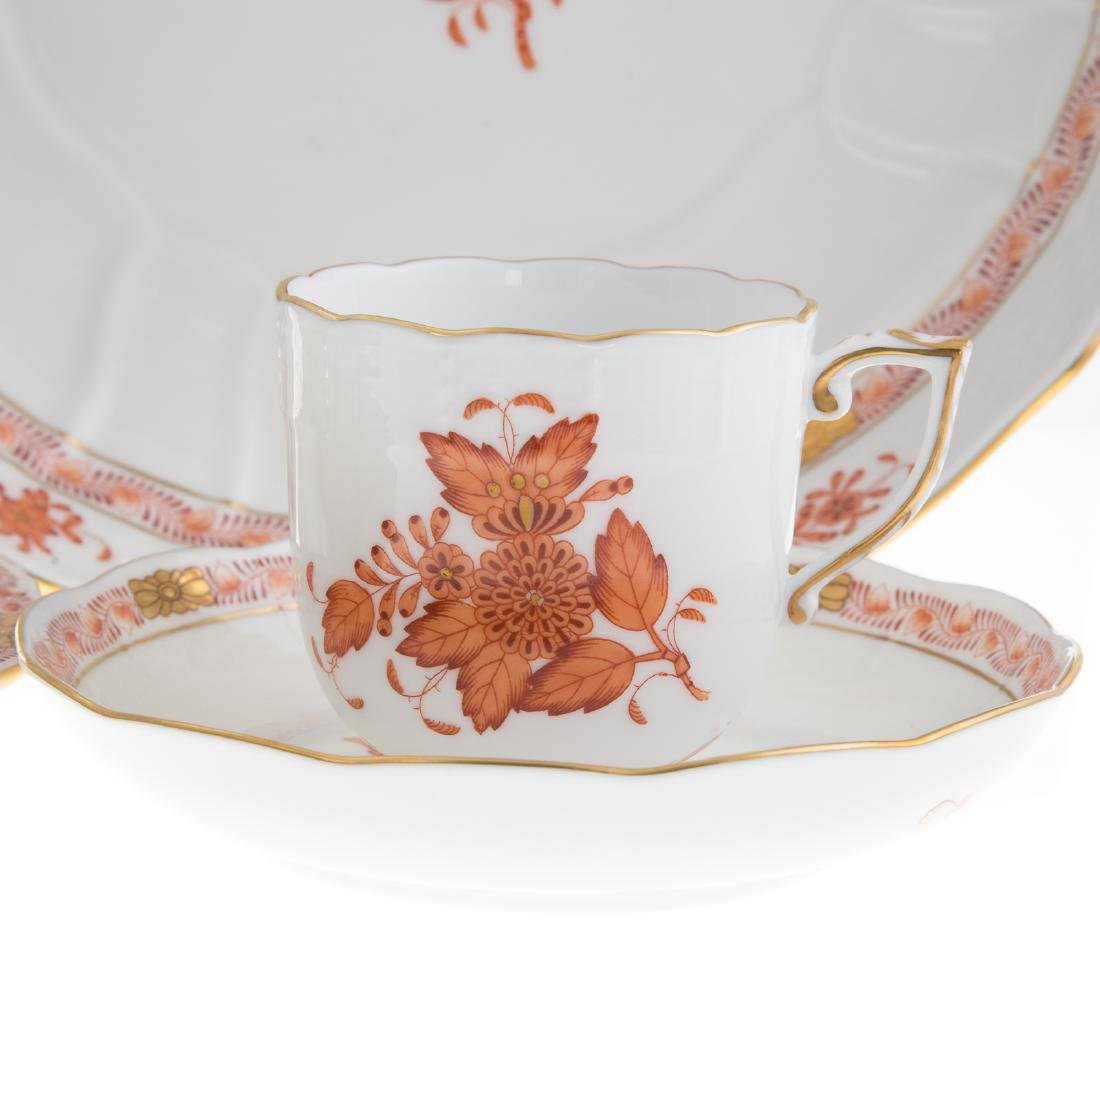 Herend china partial dinner service - 4